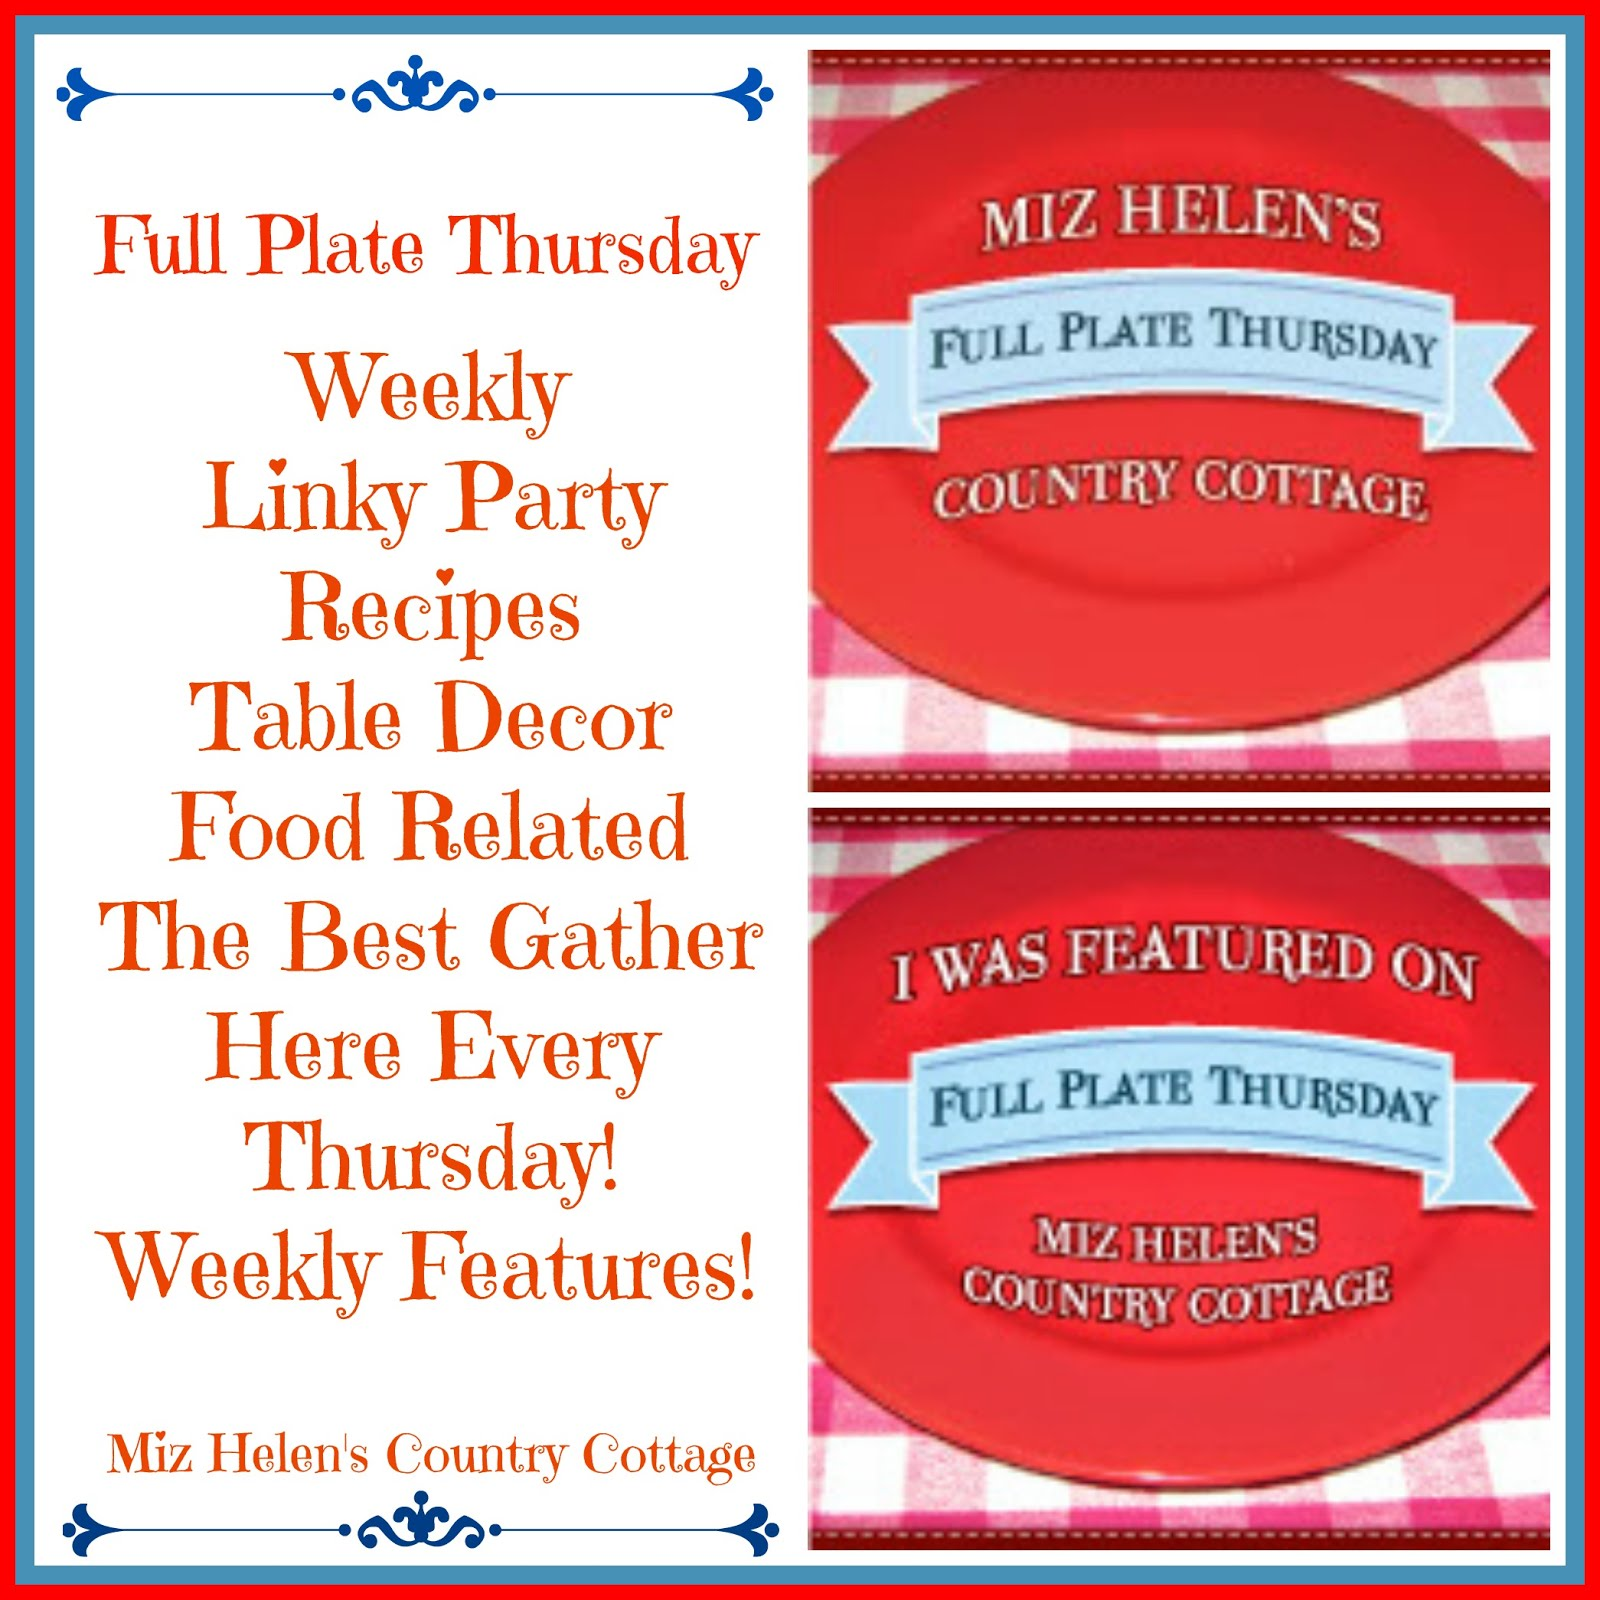 Full Plate Thursday,454 Current Party